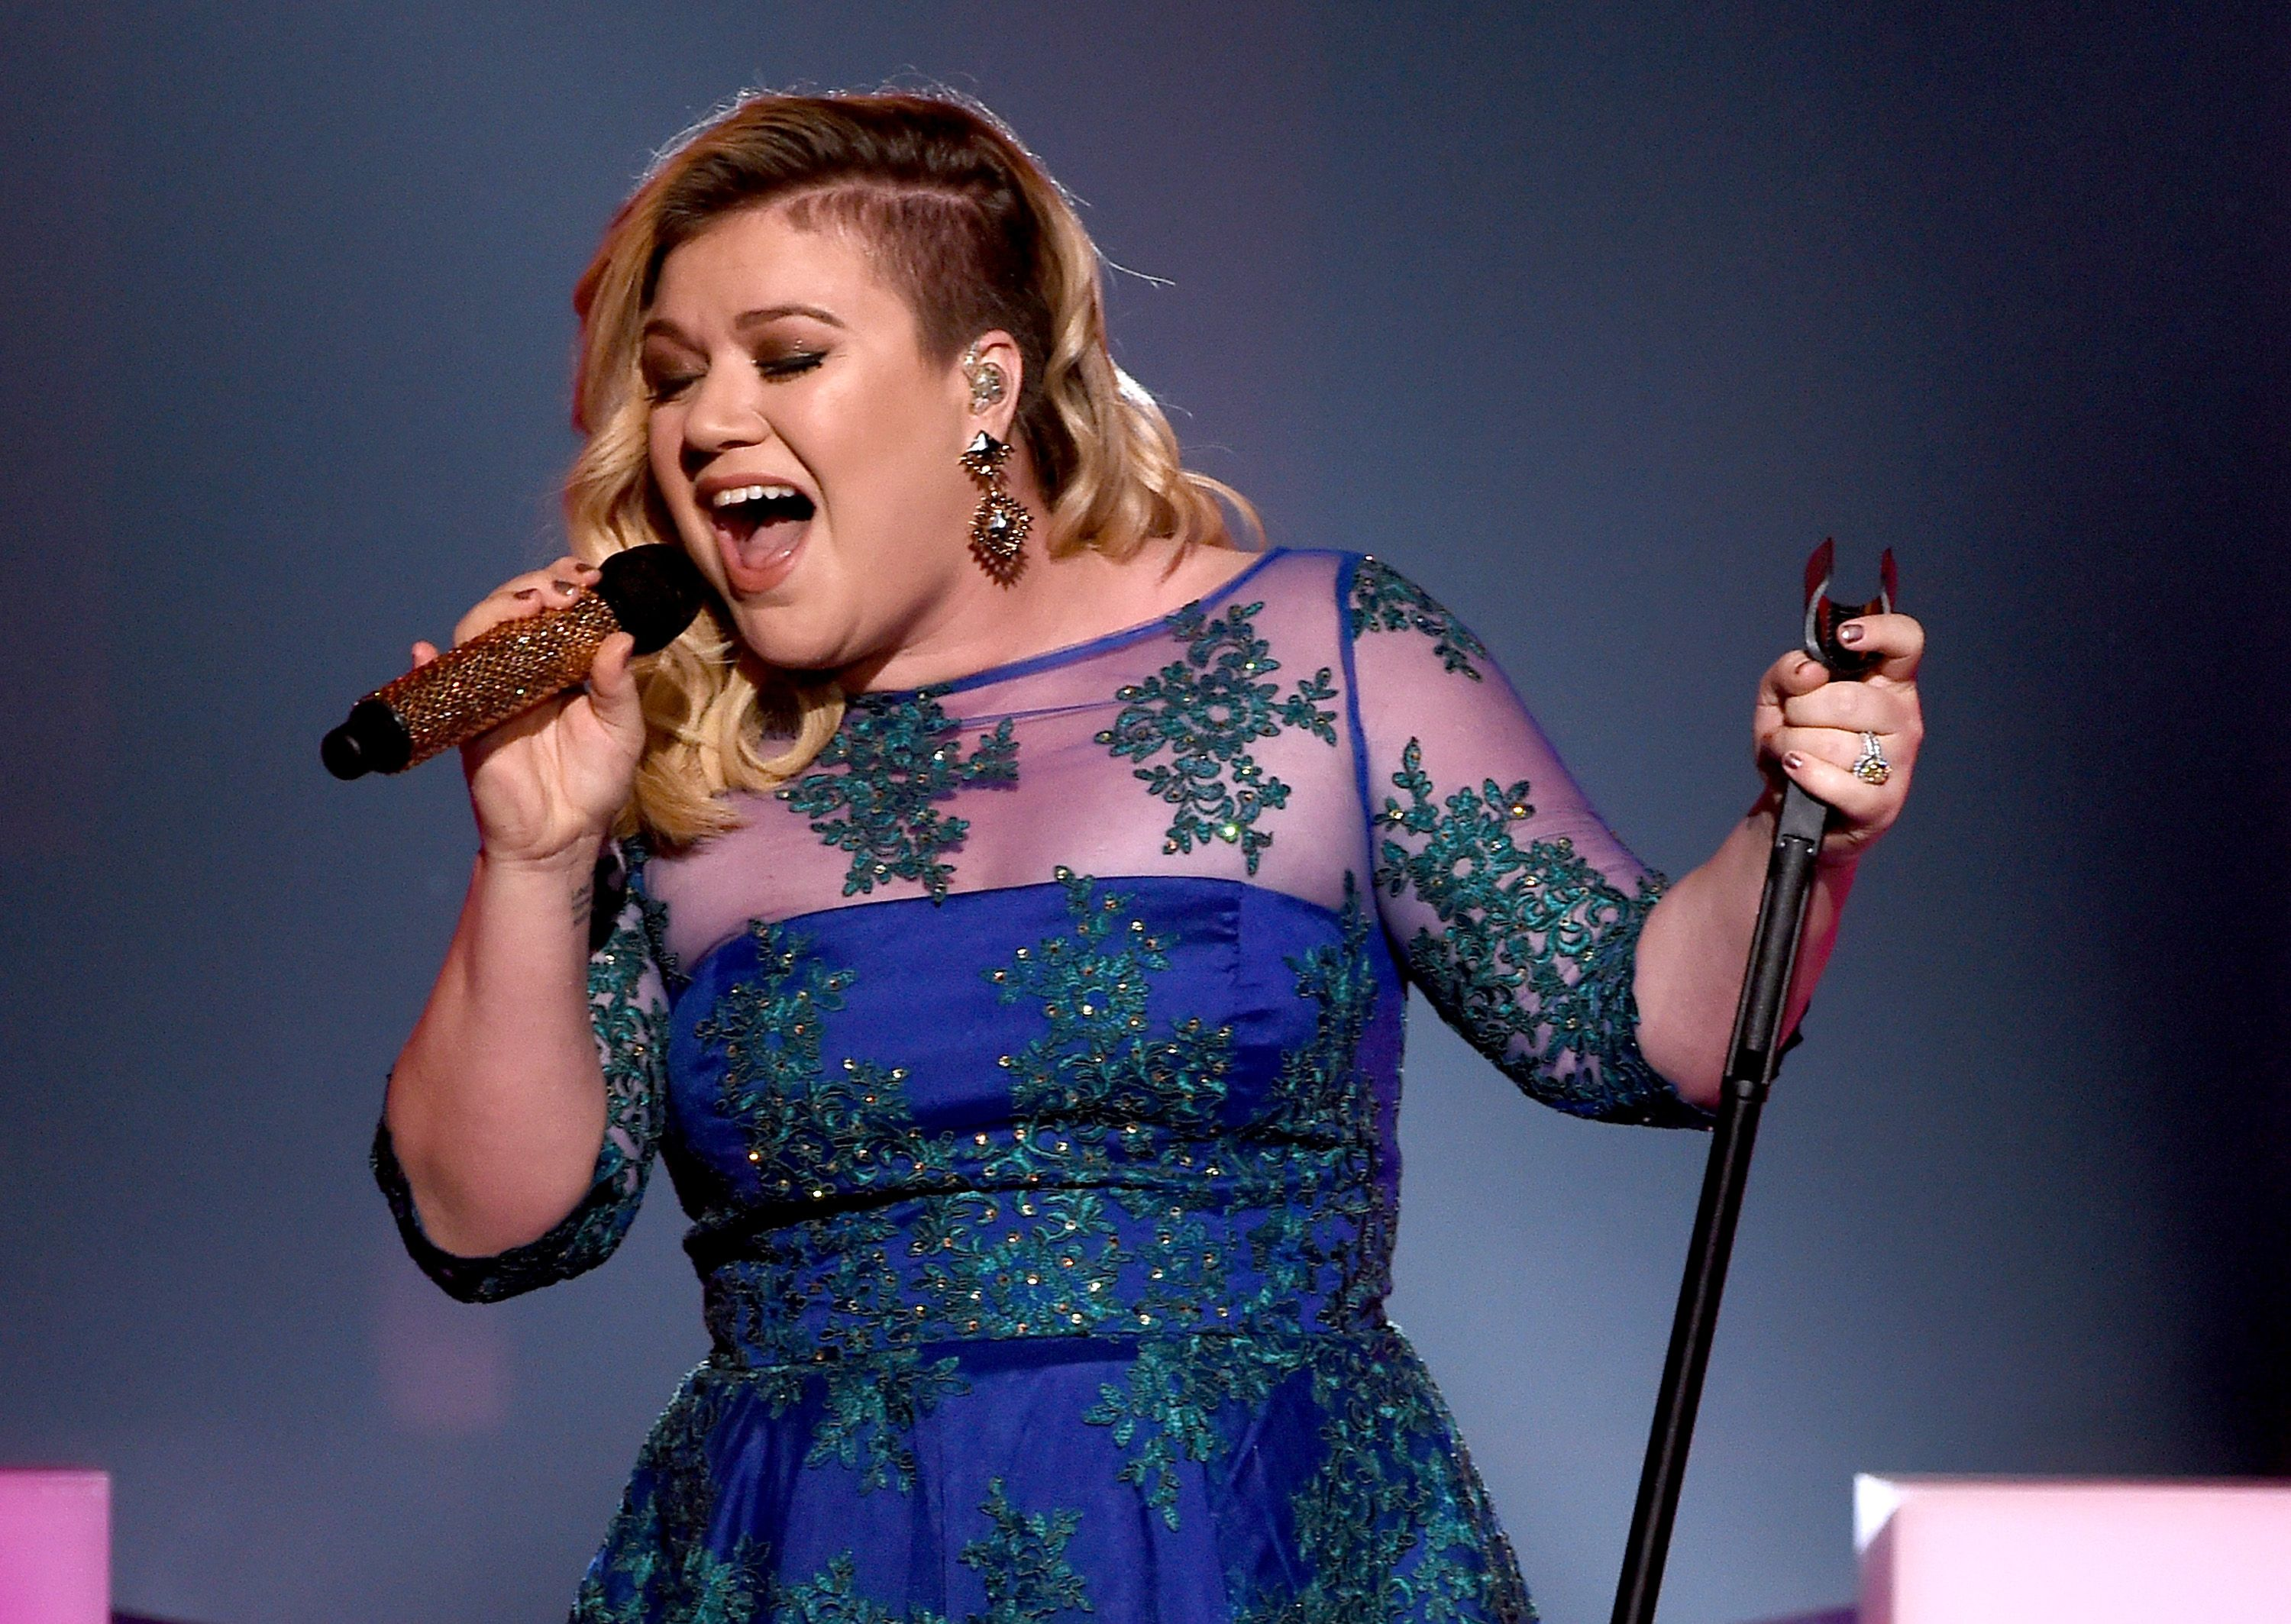 Kelly Clarkson performed 'Heartbeat Song' onstage during the 2015 iHeartRadio Music Awards which broadcasted live on NBC from The Shrine Auditorium on March 29, 2015 in Los Angeles, California. | Photo: Getty Images